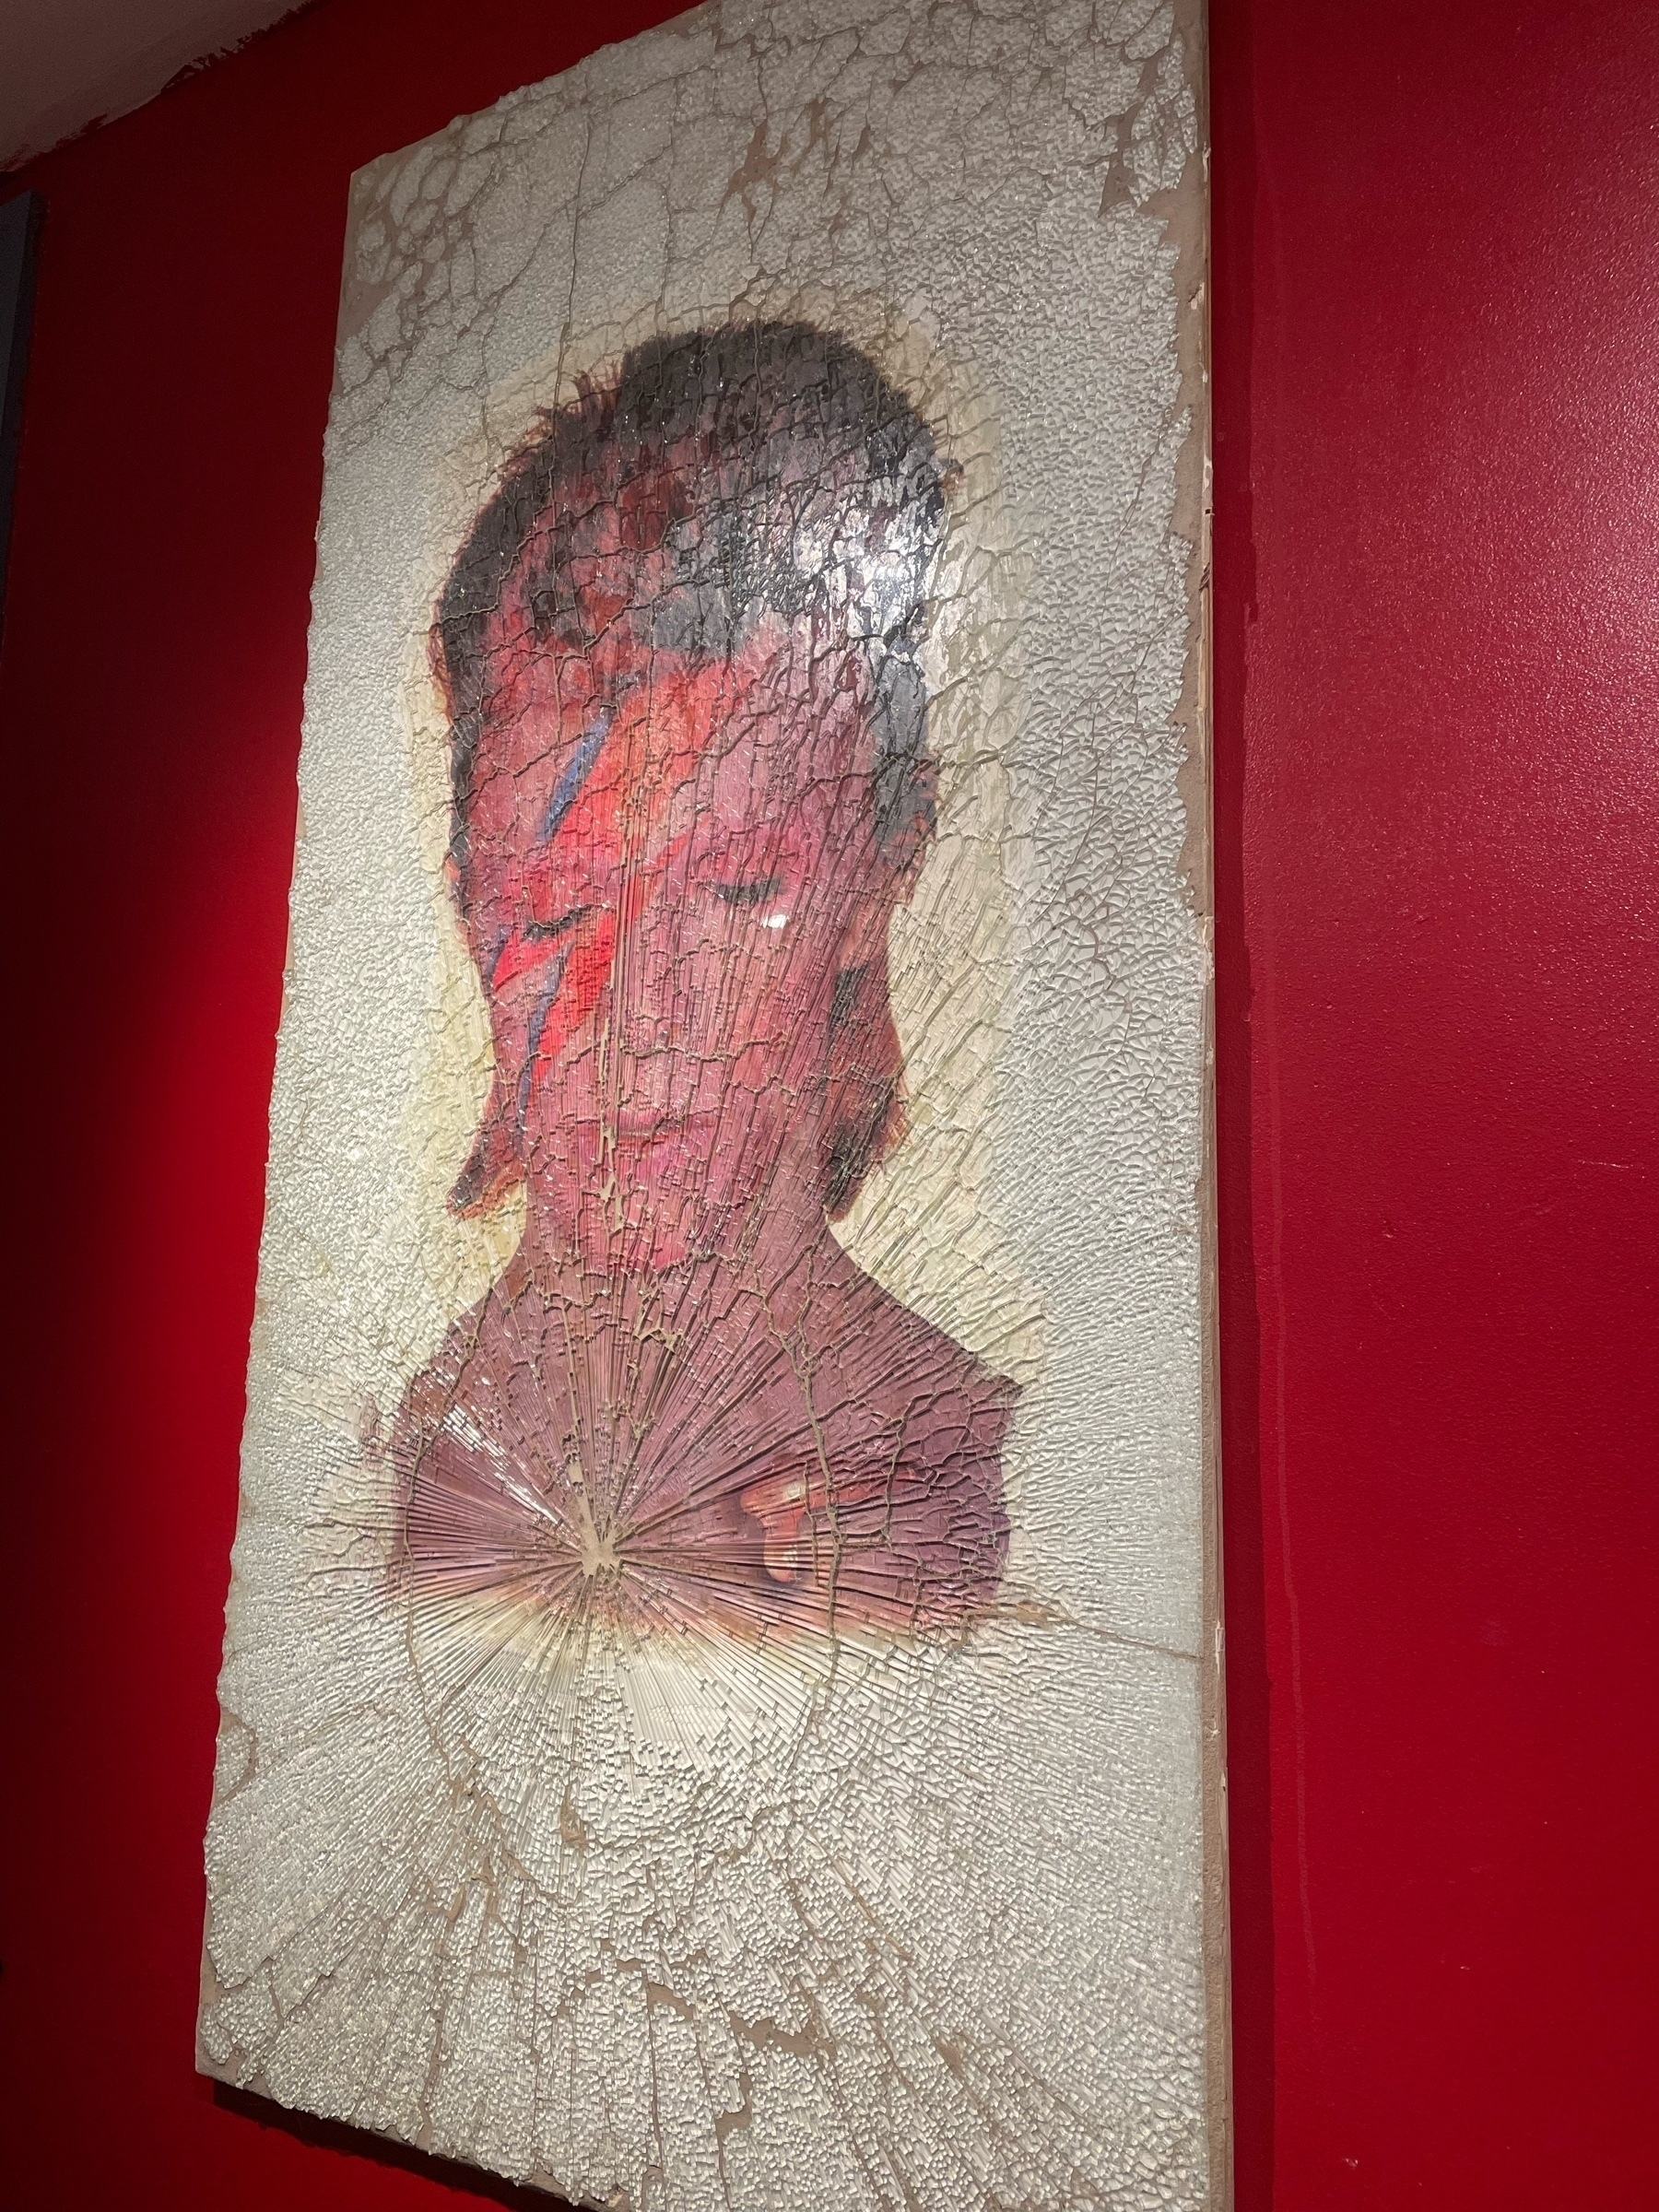 David Bowie as Ziggy Stardust behind shattered glass on a red wall.